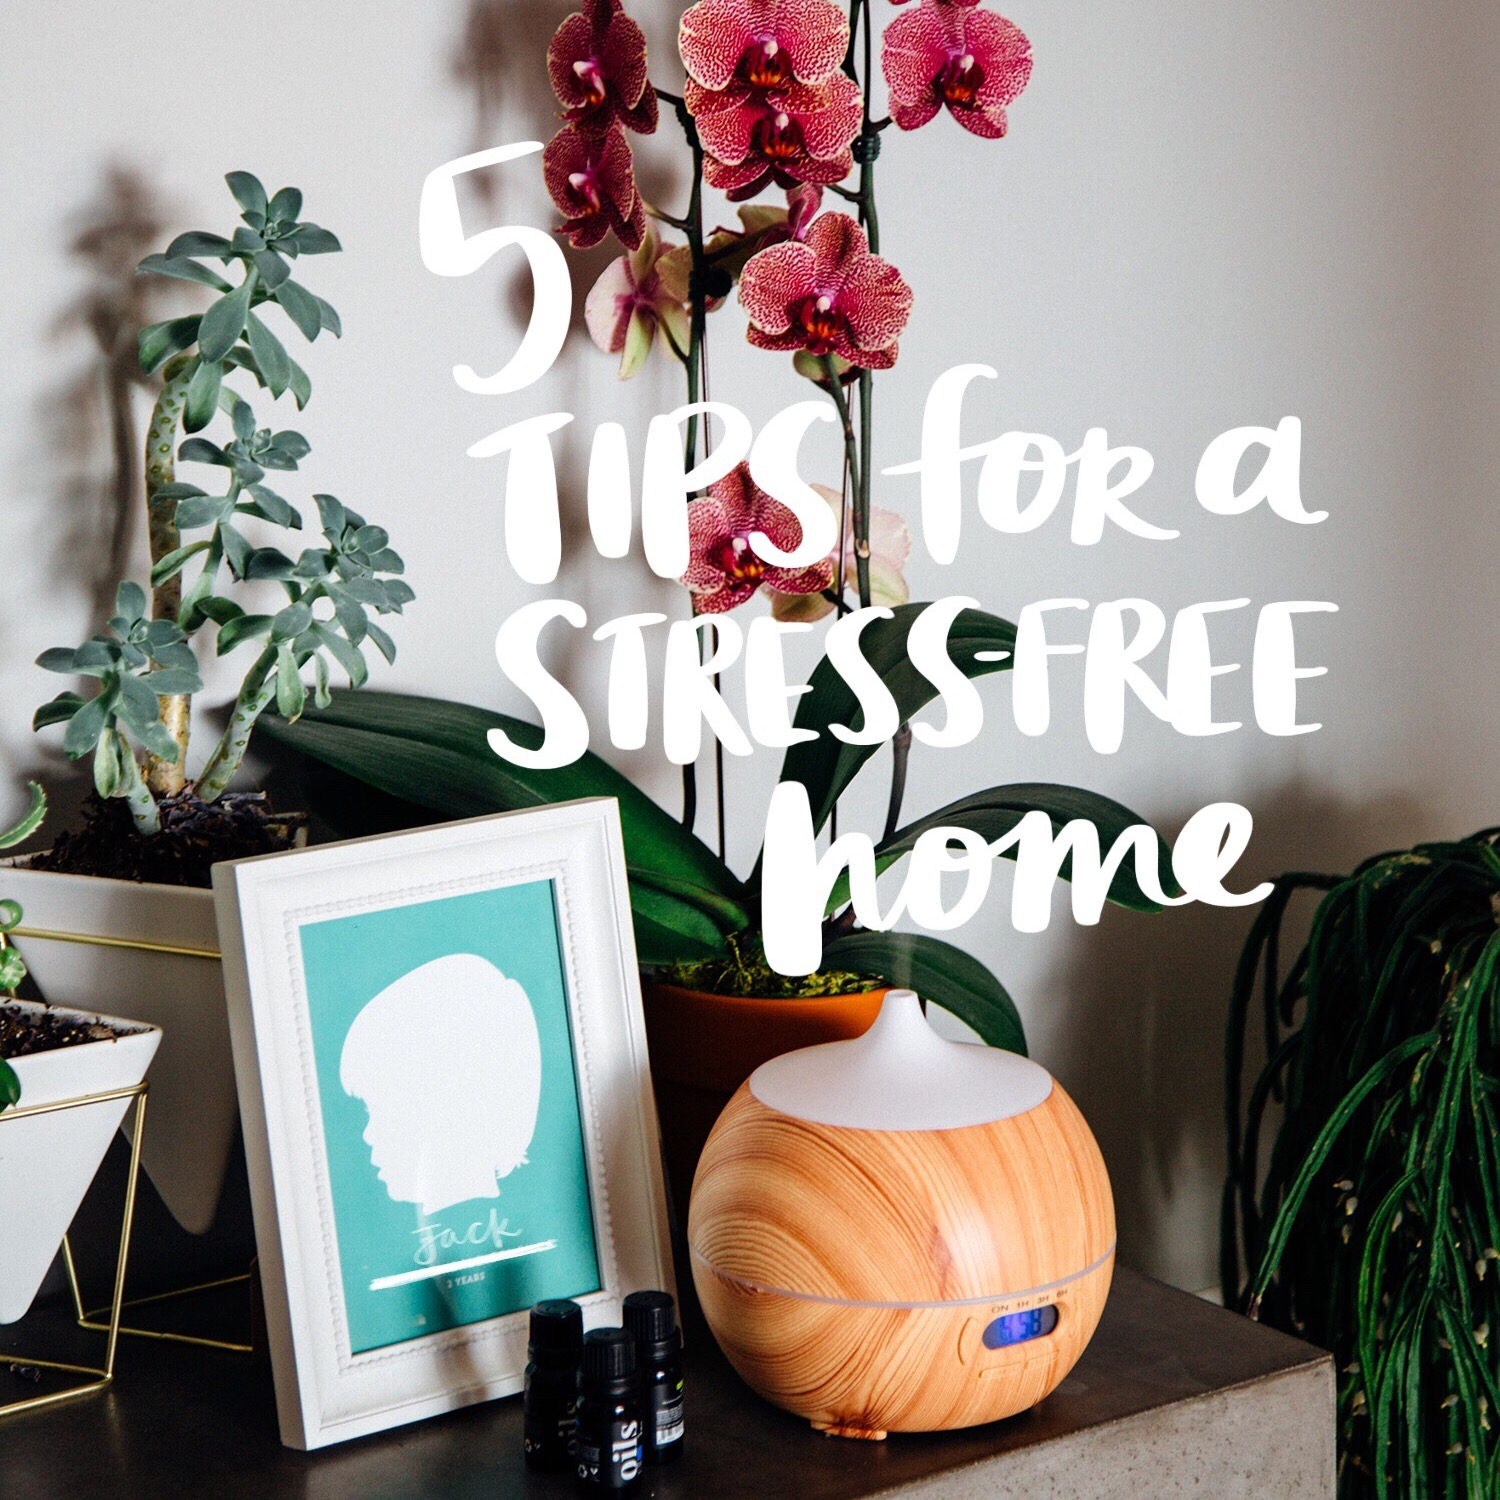 Tips for a stress-free home